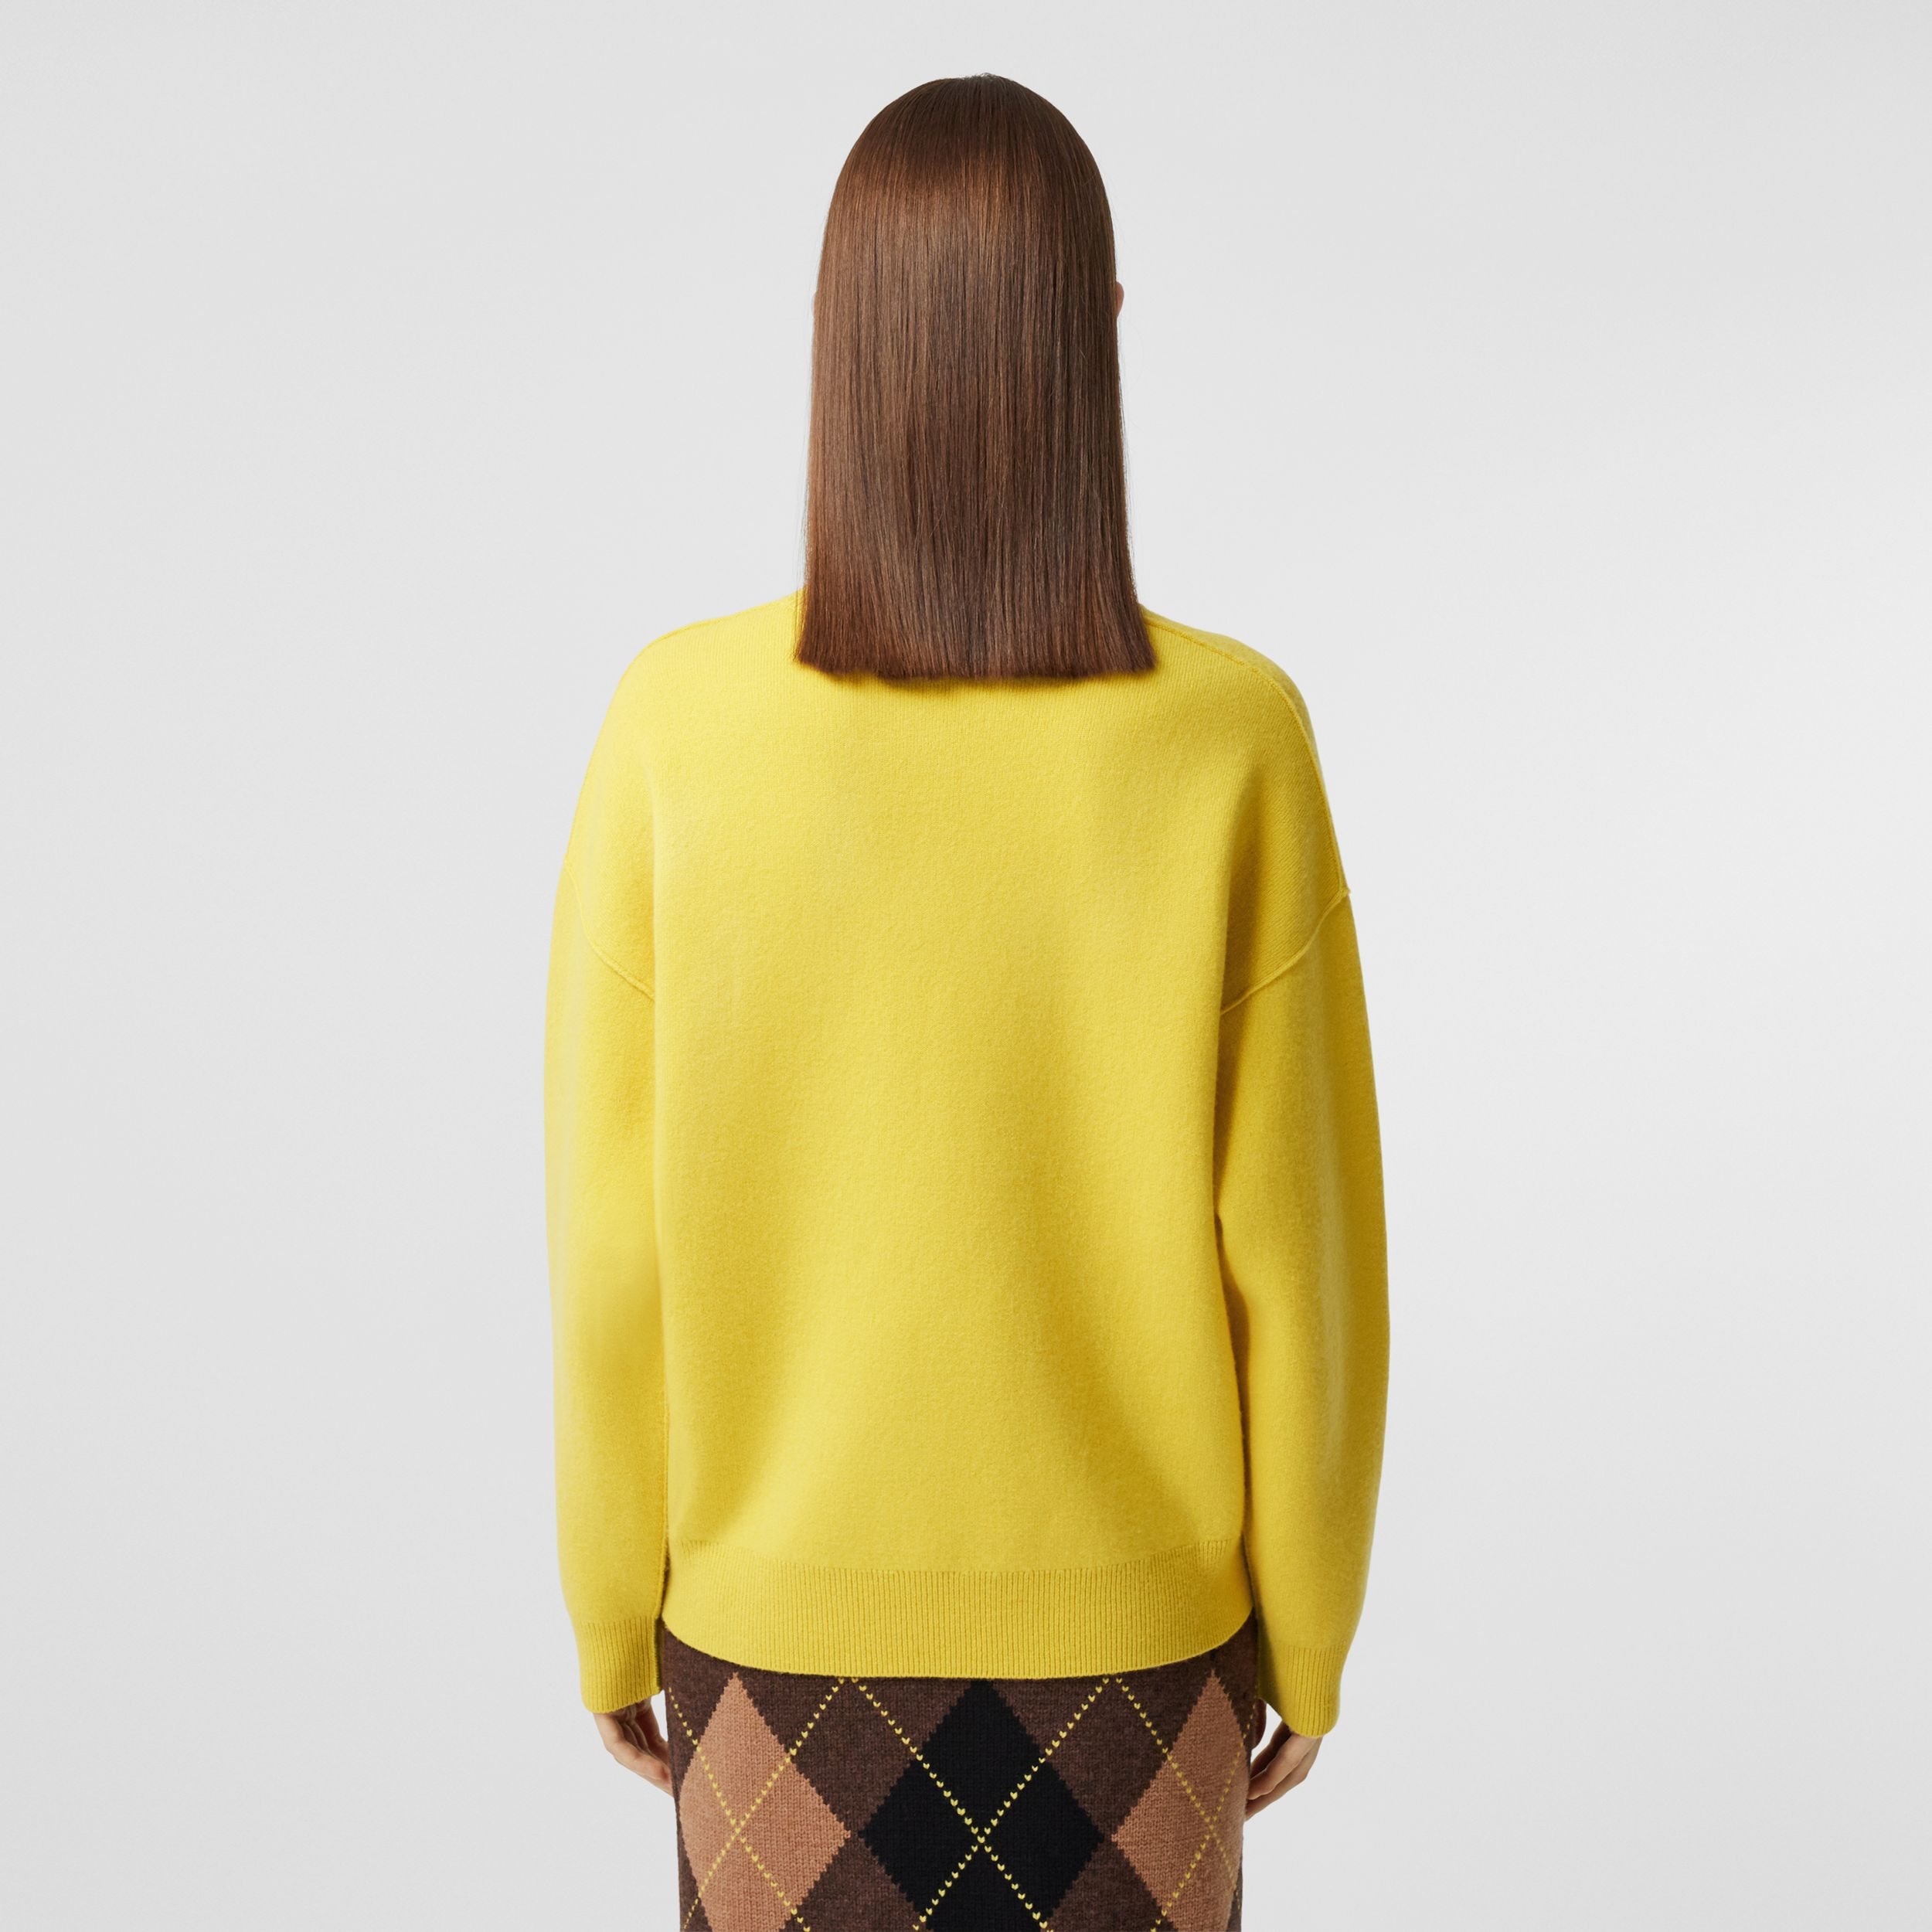 Monogram Motif Cashmere Blend Sweater in Bright Yellow - Women | Burberry - 3